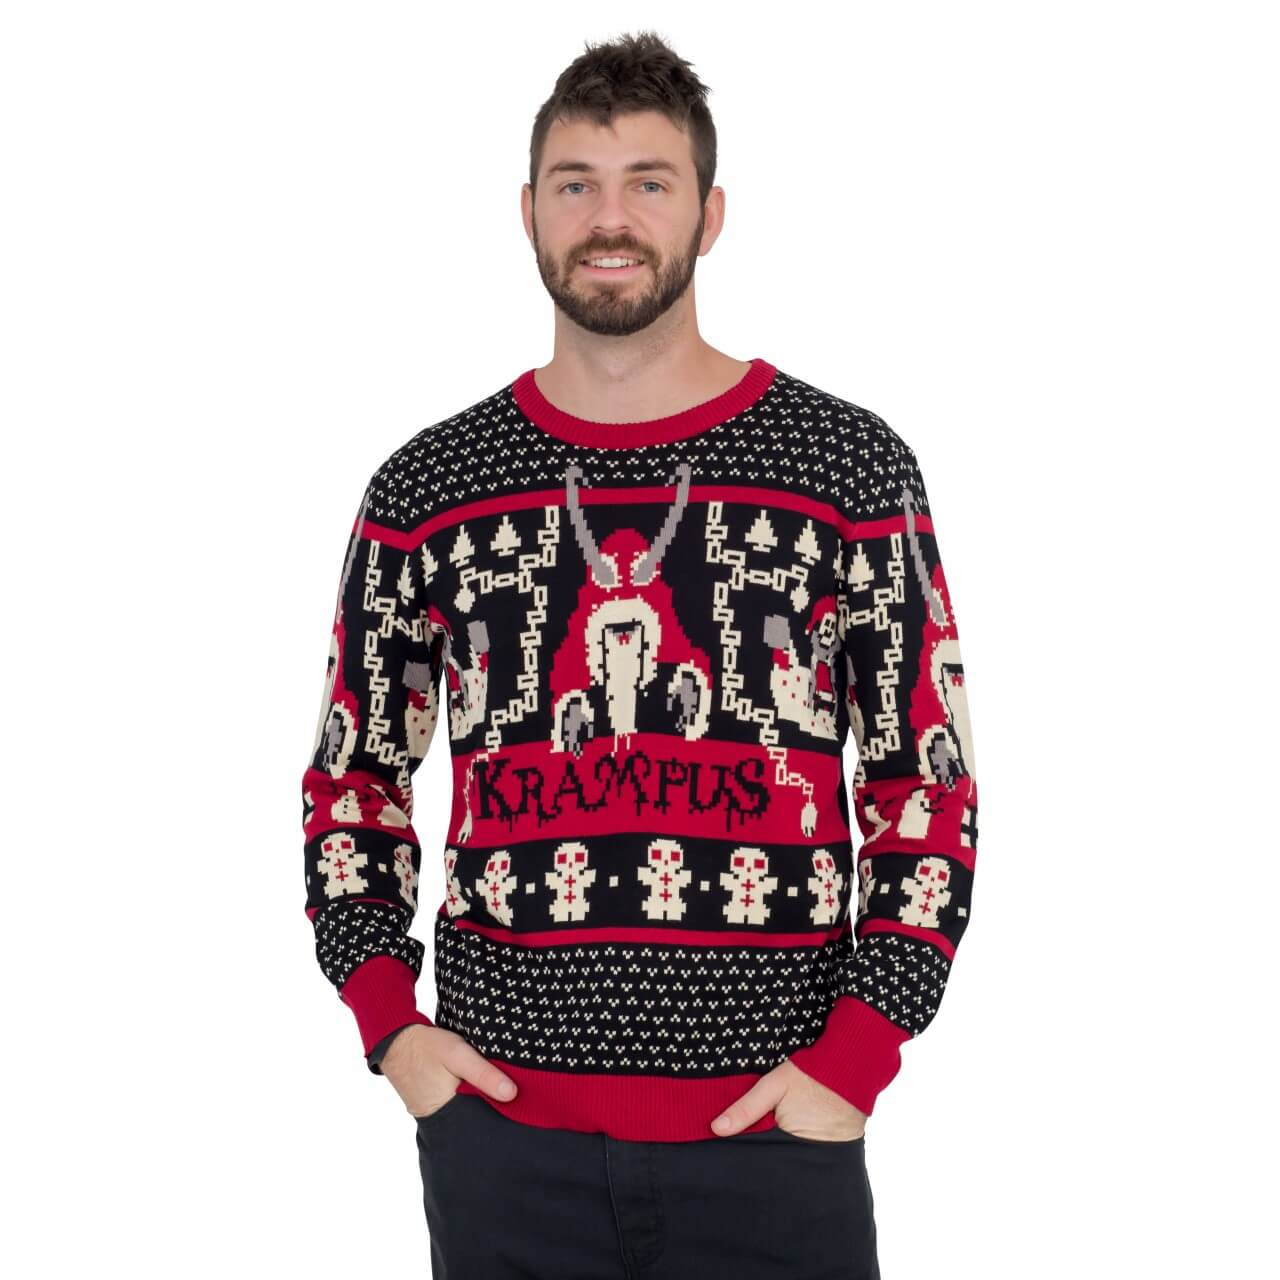 Ugly Christmas Sweaters.Krampus Knit Ugly Christmas Sweater